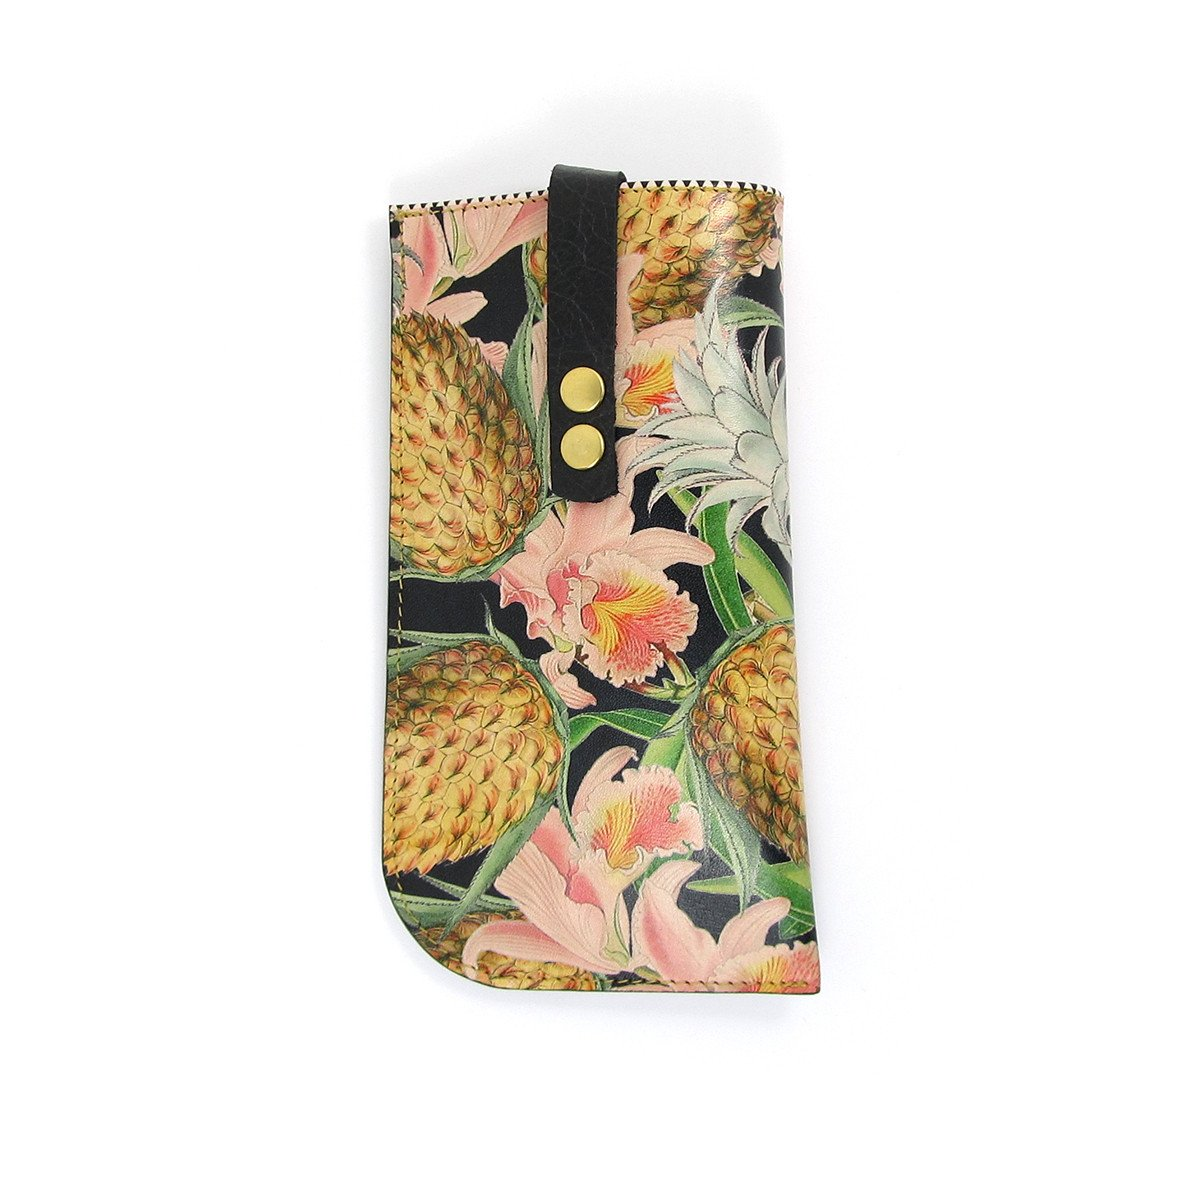 Leather Sunglasses Case - Tropical No.2 - Tovi Sorga  - 1